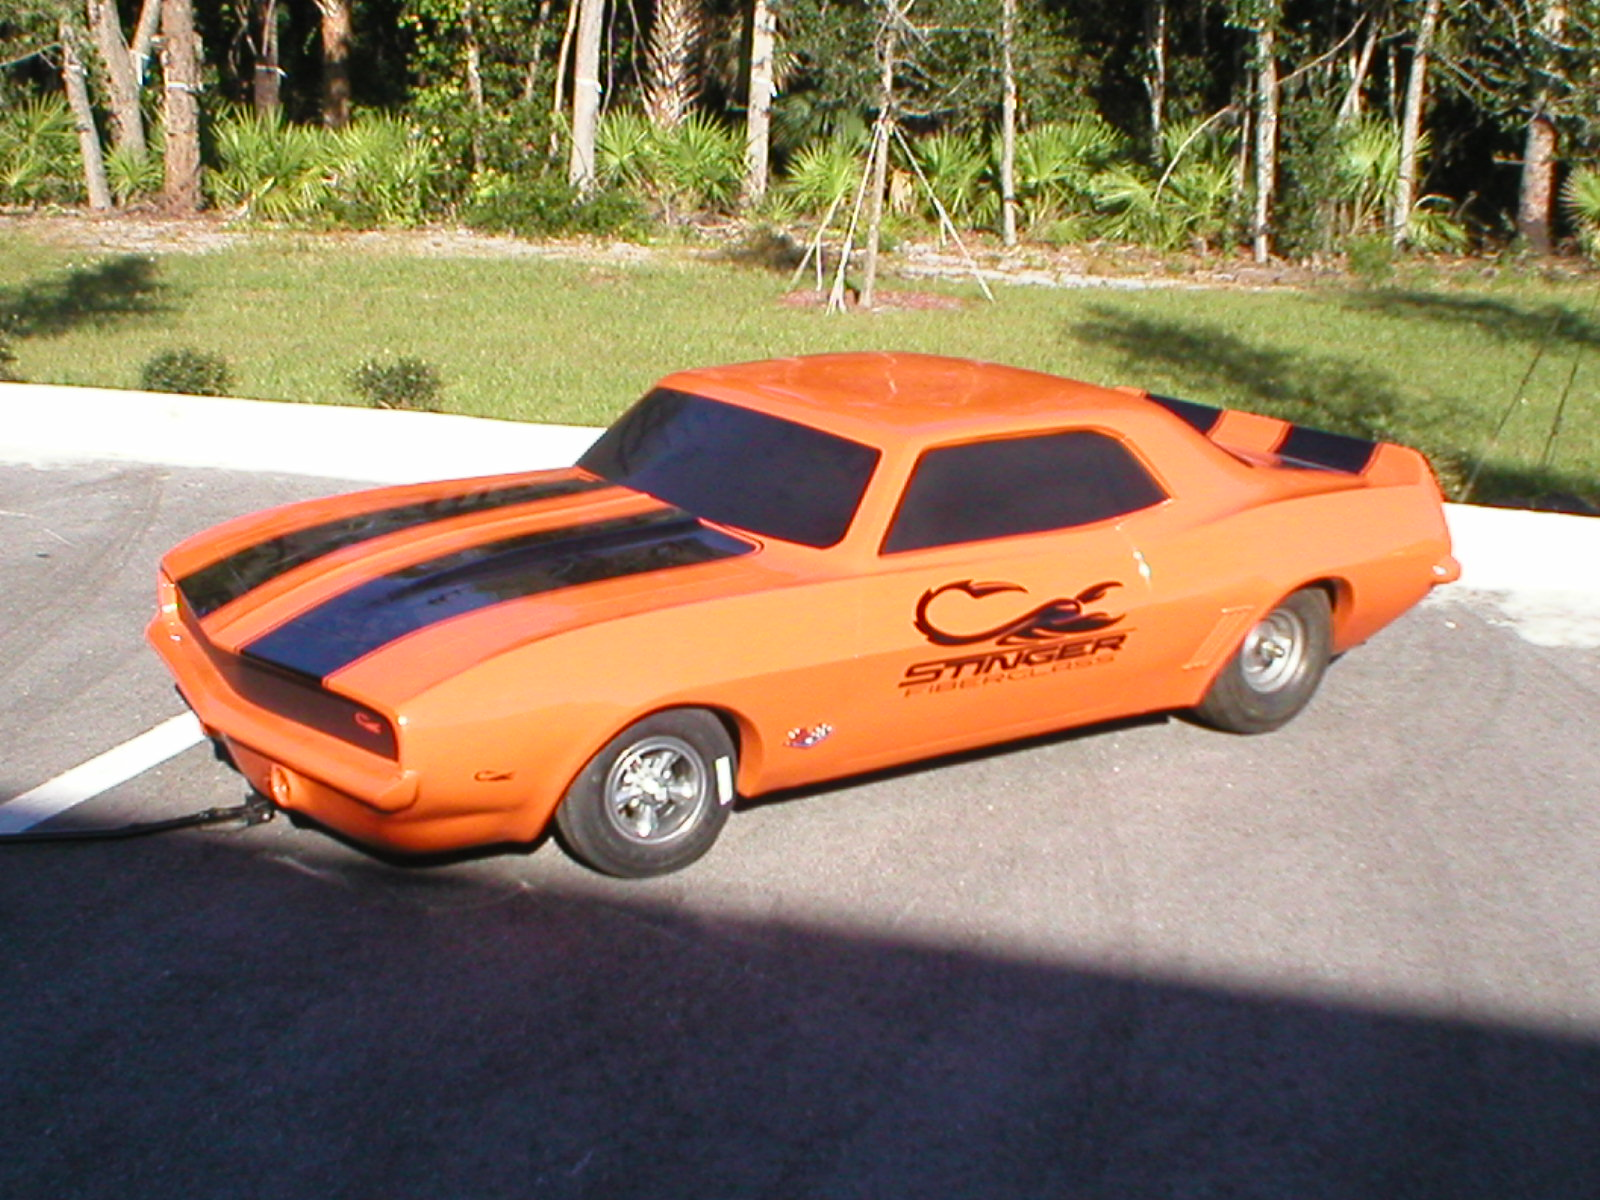 chevy camaro kart body 1969 american sports car. Black Bedroom Furniture Sets. Home Design Ideas